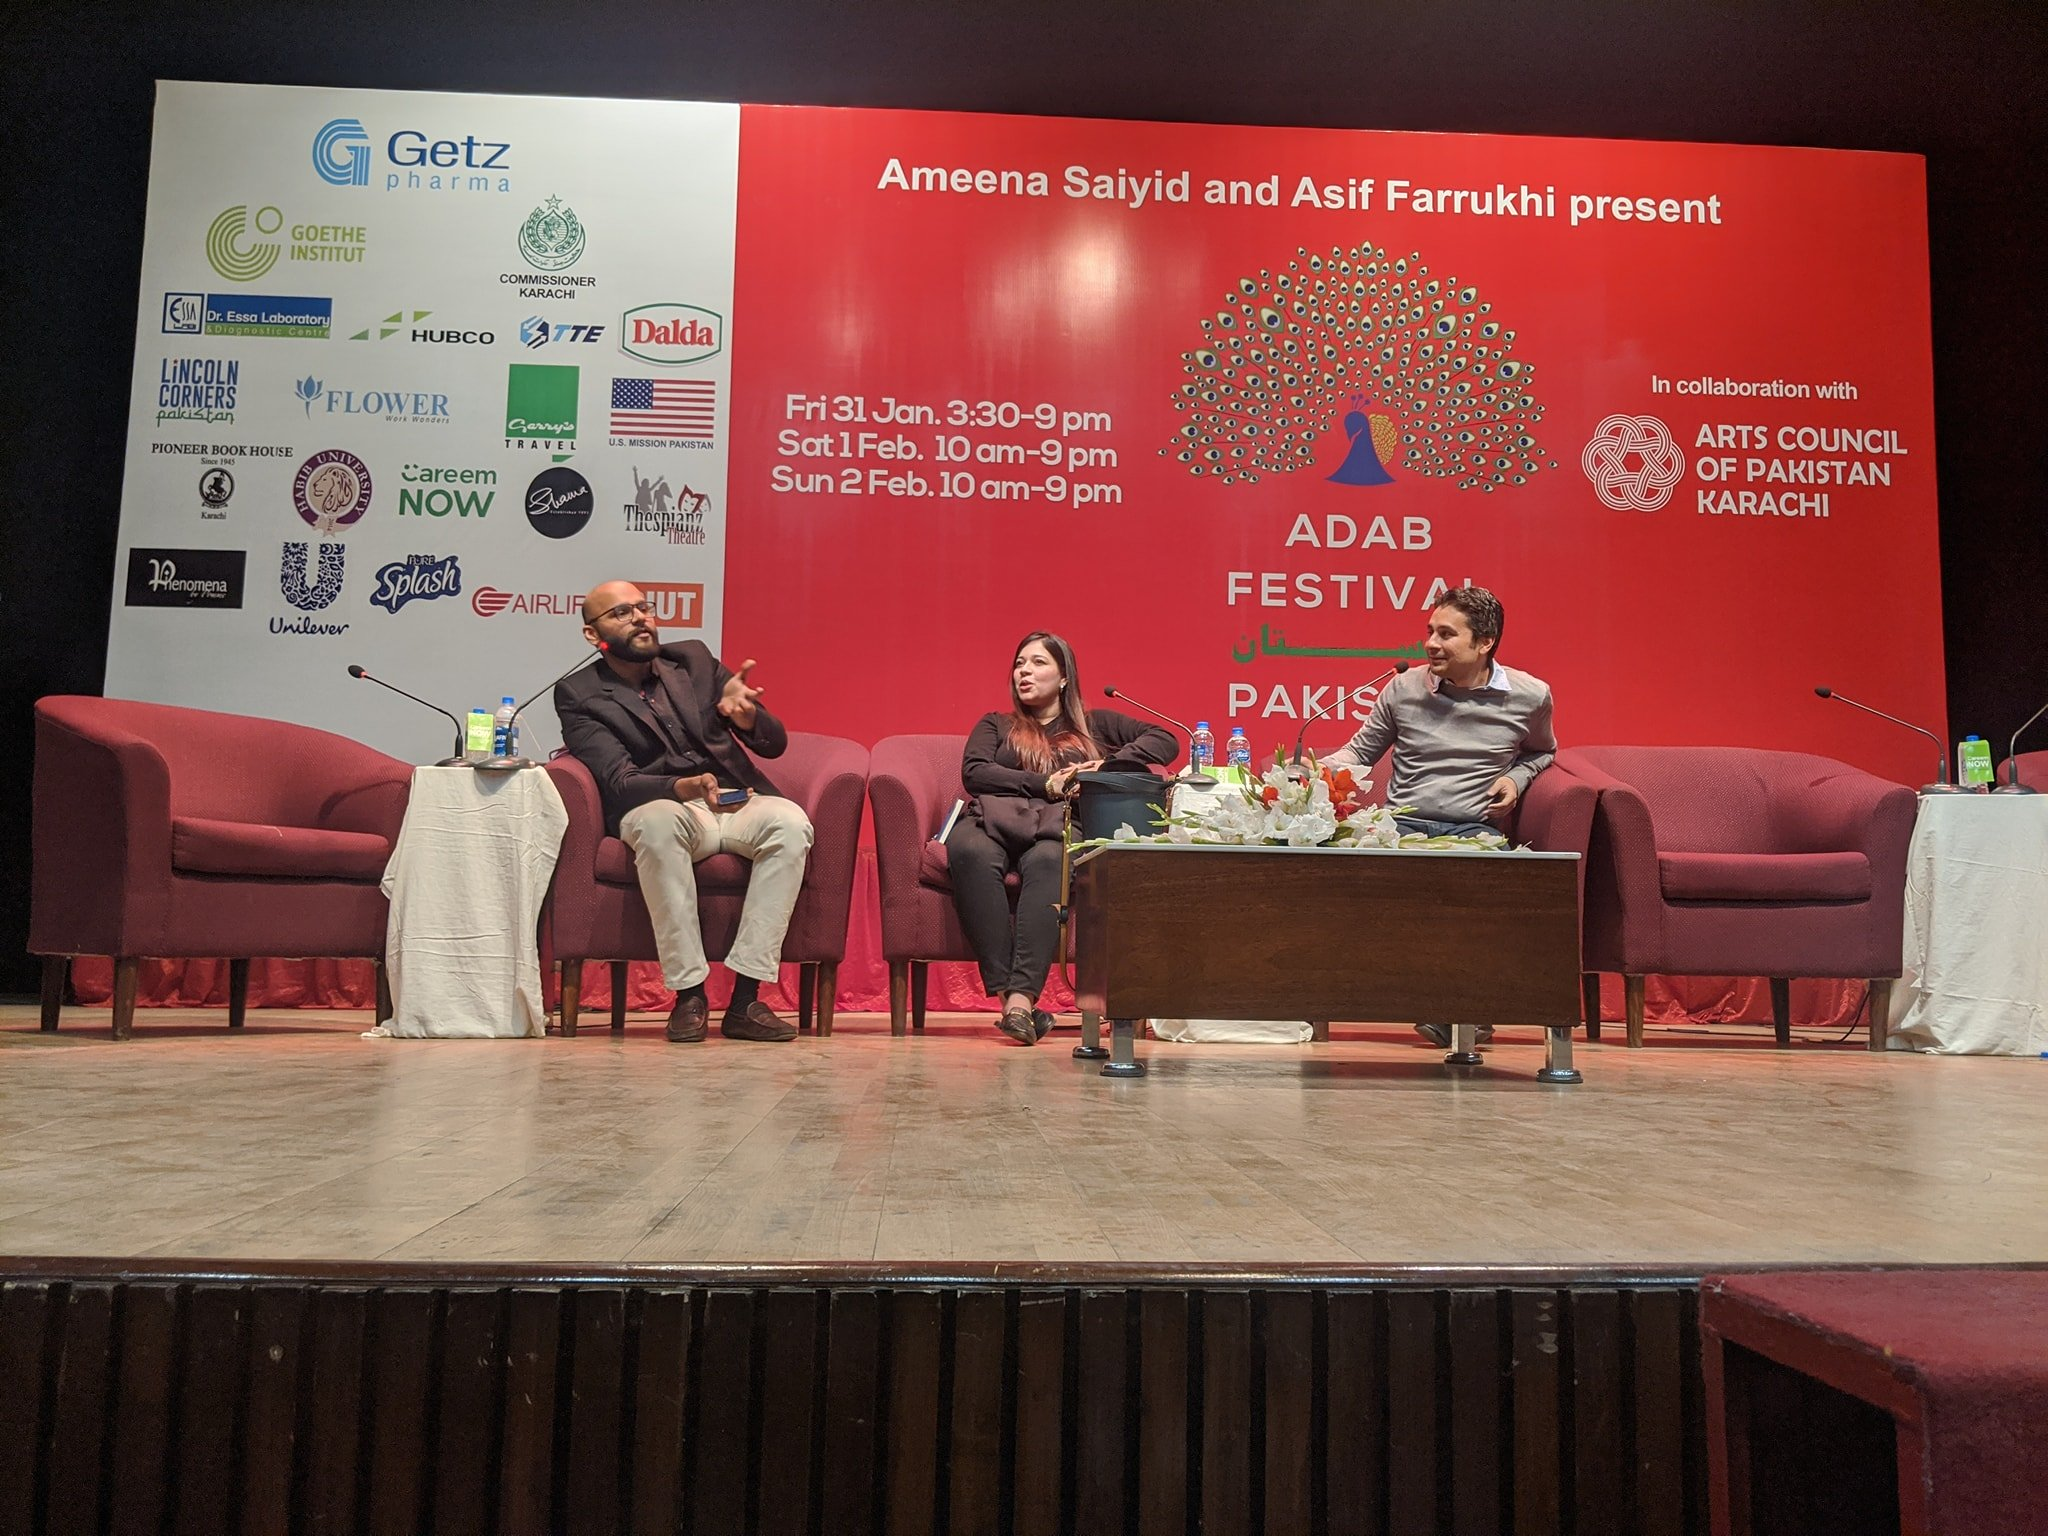 comedy neglected as a real art form in pakistan